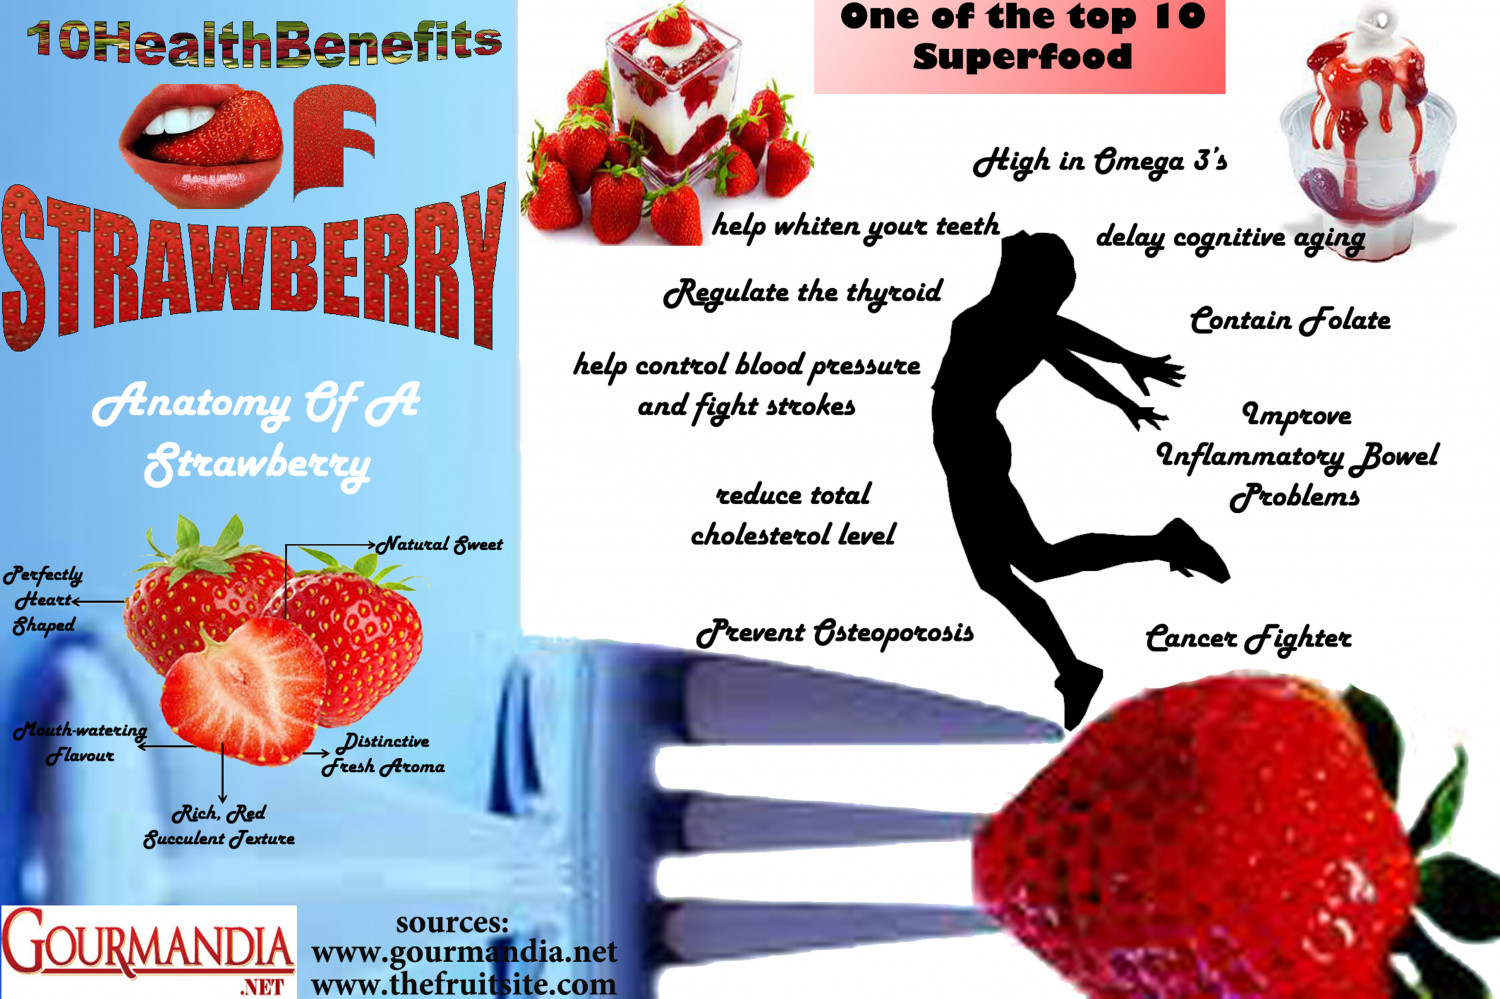 10 Health Benefits of Strawberry Infographic